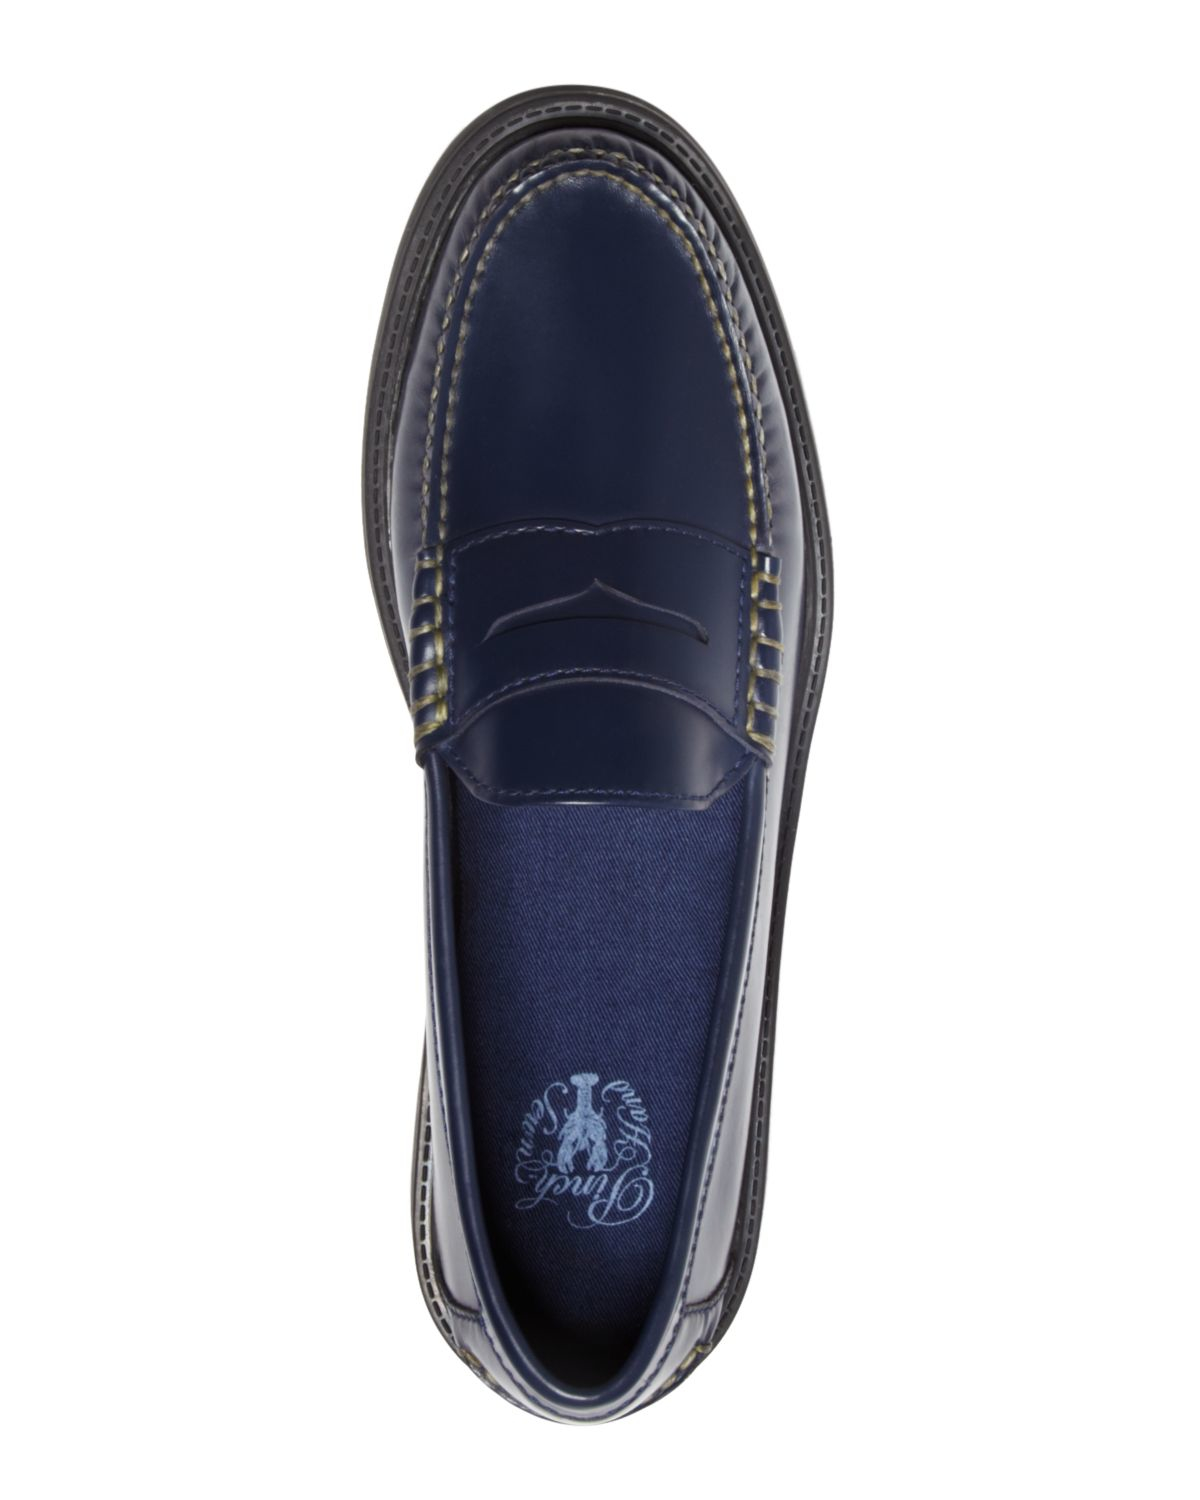 Lyst - Cole Haan Pinch Campus Penny Loafers in Blue